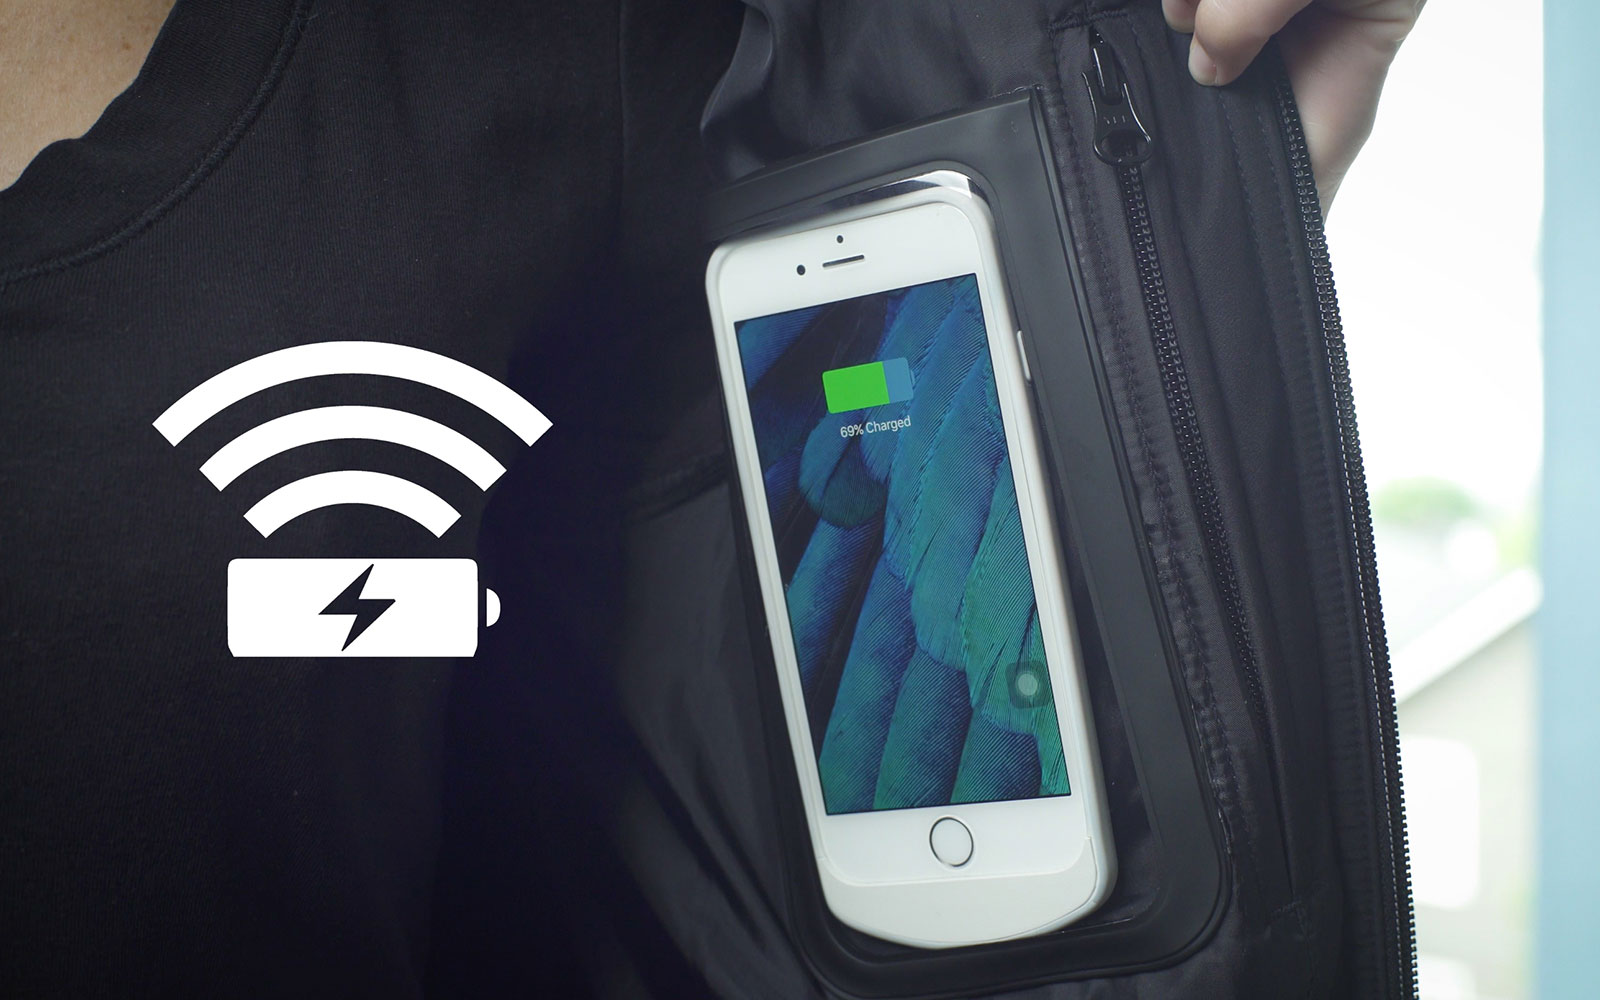 This Jacket Will Charge All Your Devices While You're Wearing It